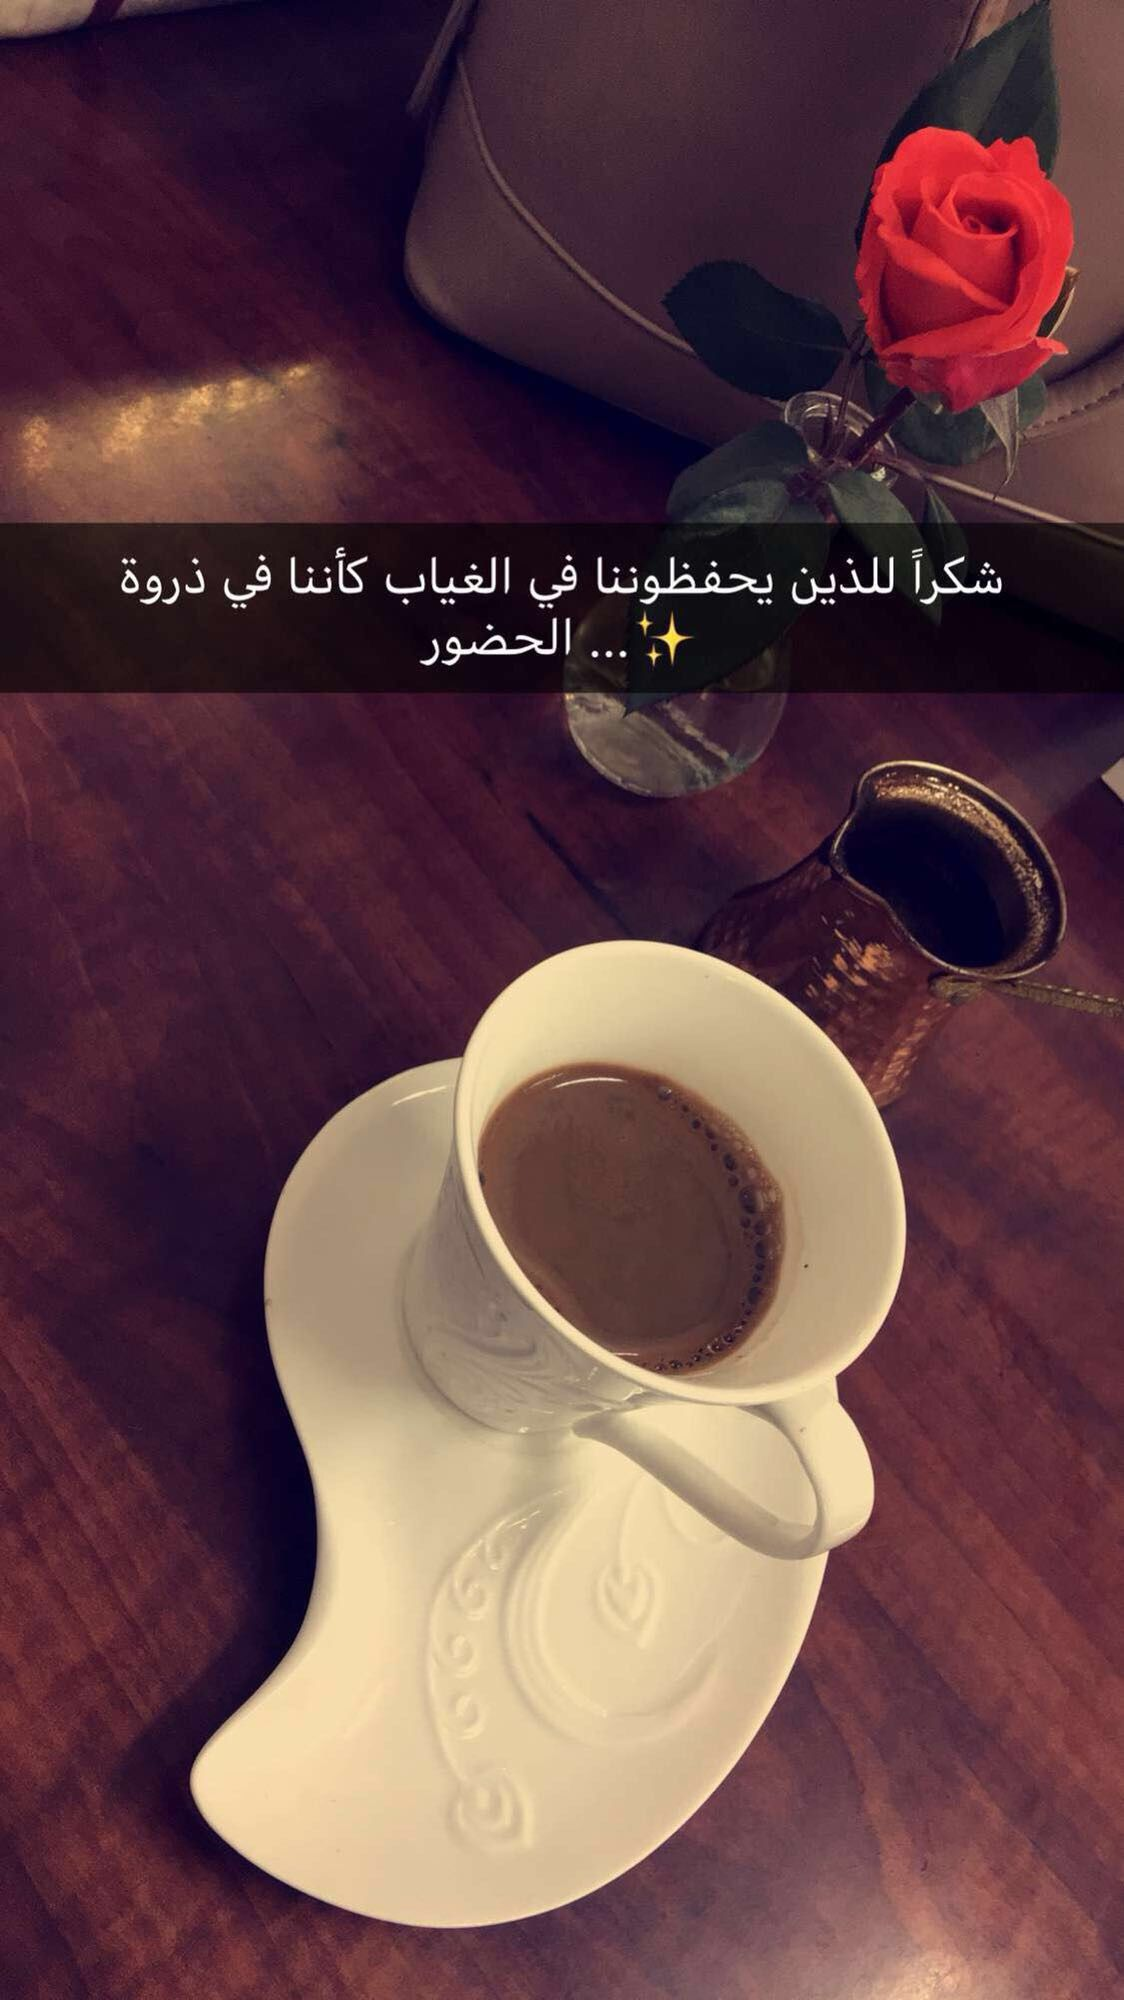 Pin By Hie07 On سناب شات Sweet Words Arabic Quotes Arabic Love Quotes